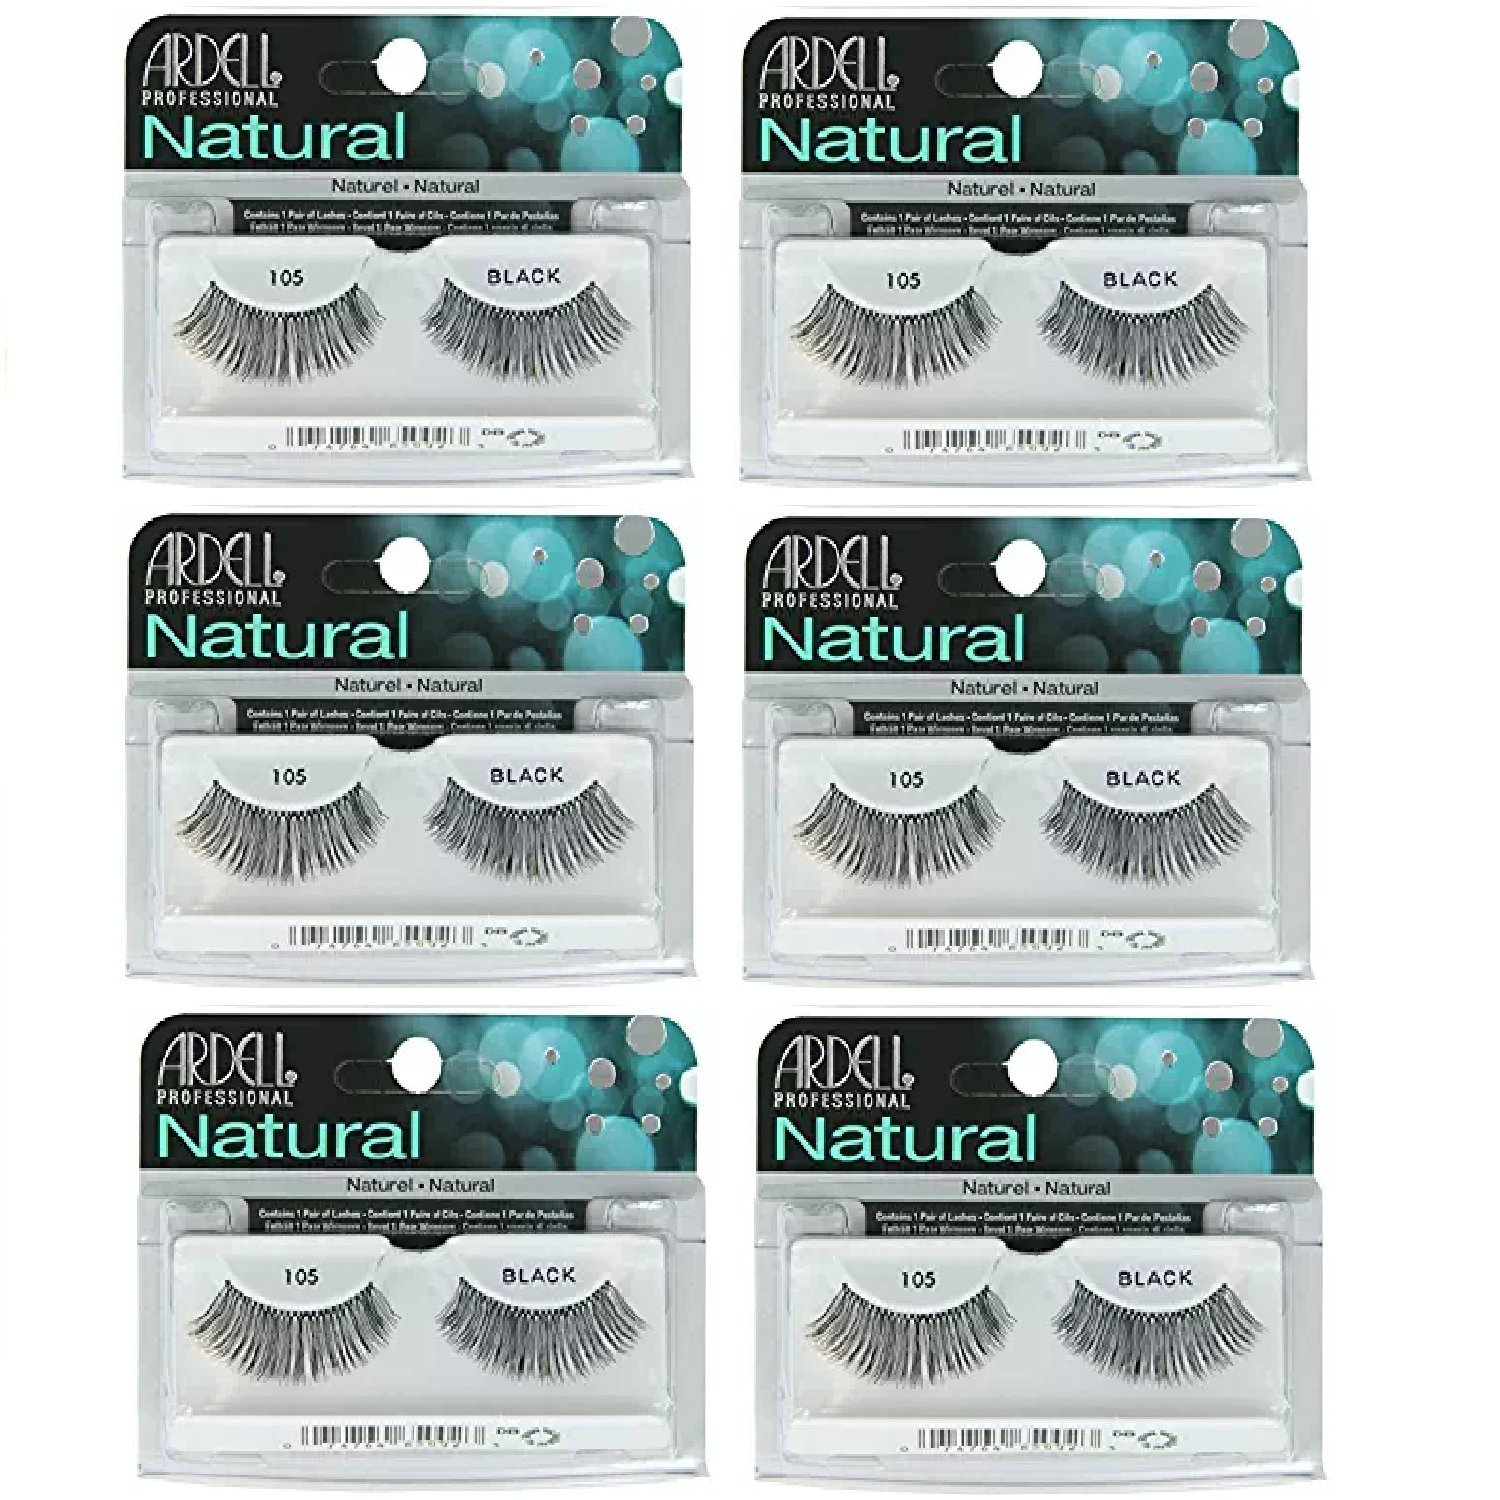 d8fb3994185 Amazon.com : Ardell - Fashion Lashes #105, Reusable upto Three Weeks, Black  (6 Pack) : Beauty